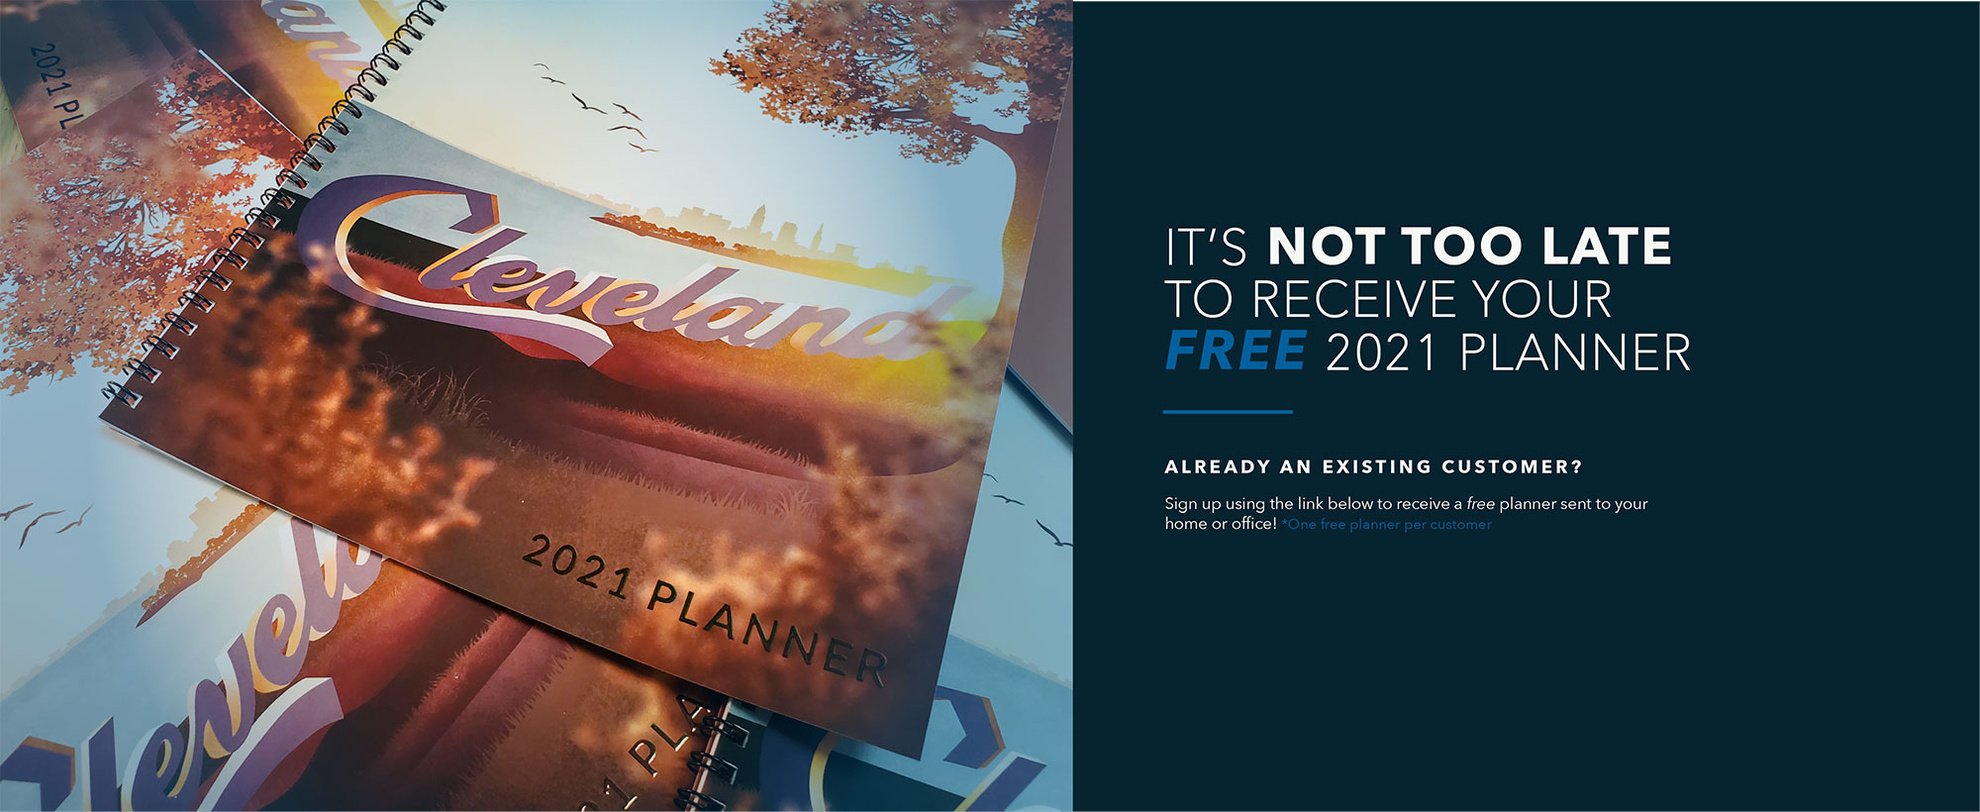 FREE 2021 Planner from NOP